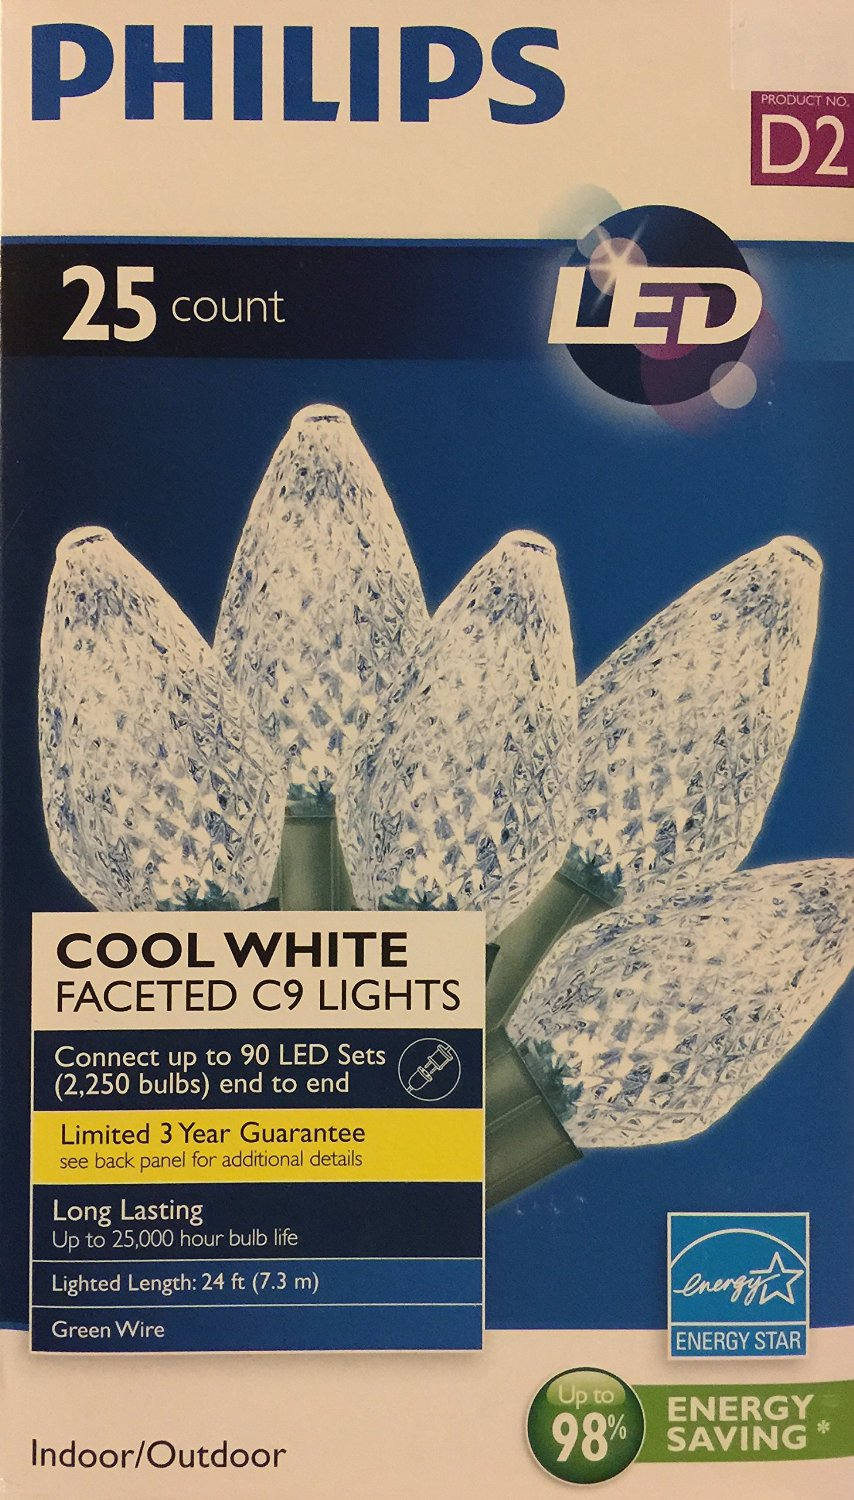 philips 25ct cool white led faceted c9 string christmas lights